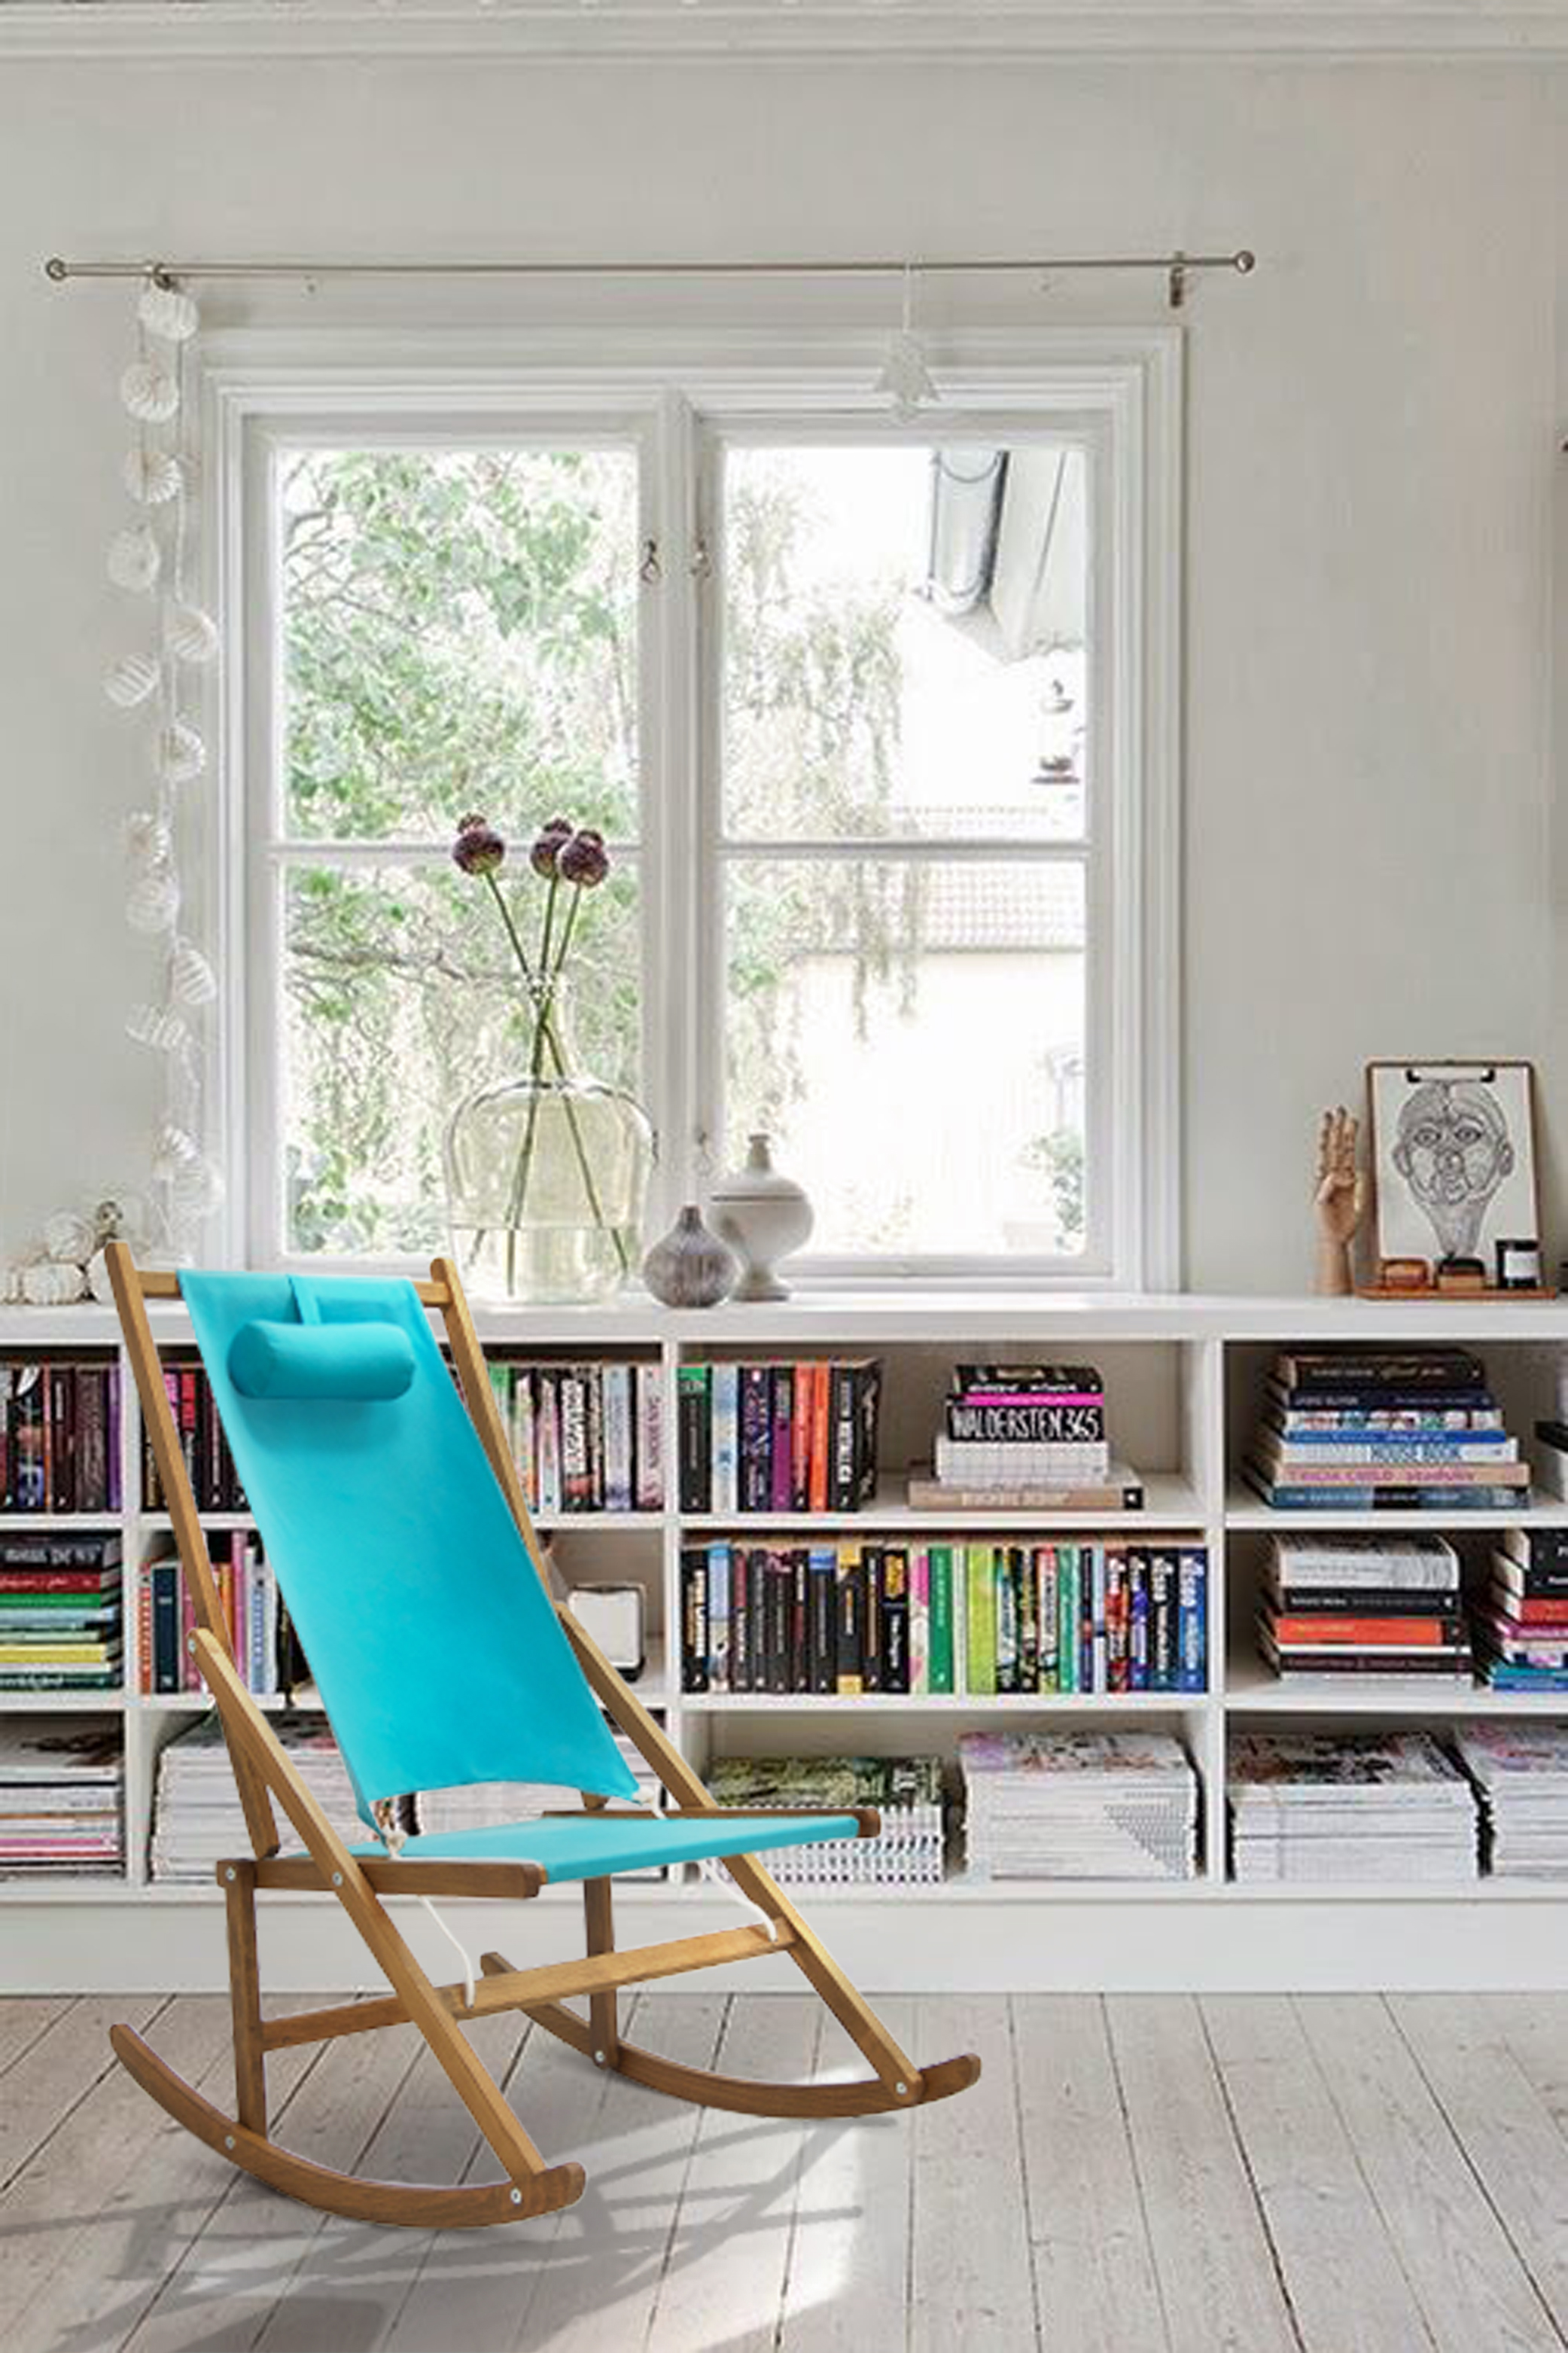 Reading nook done with rocking chair